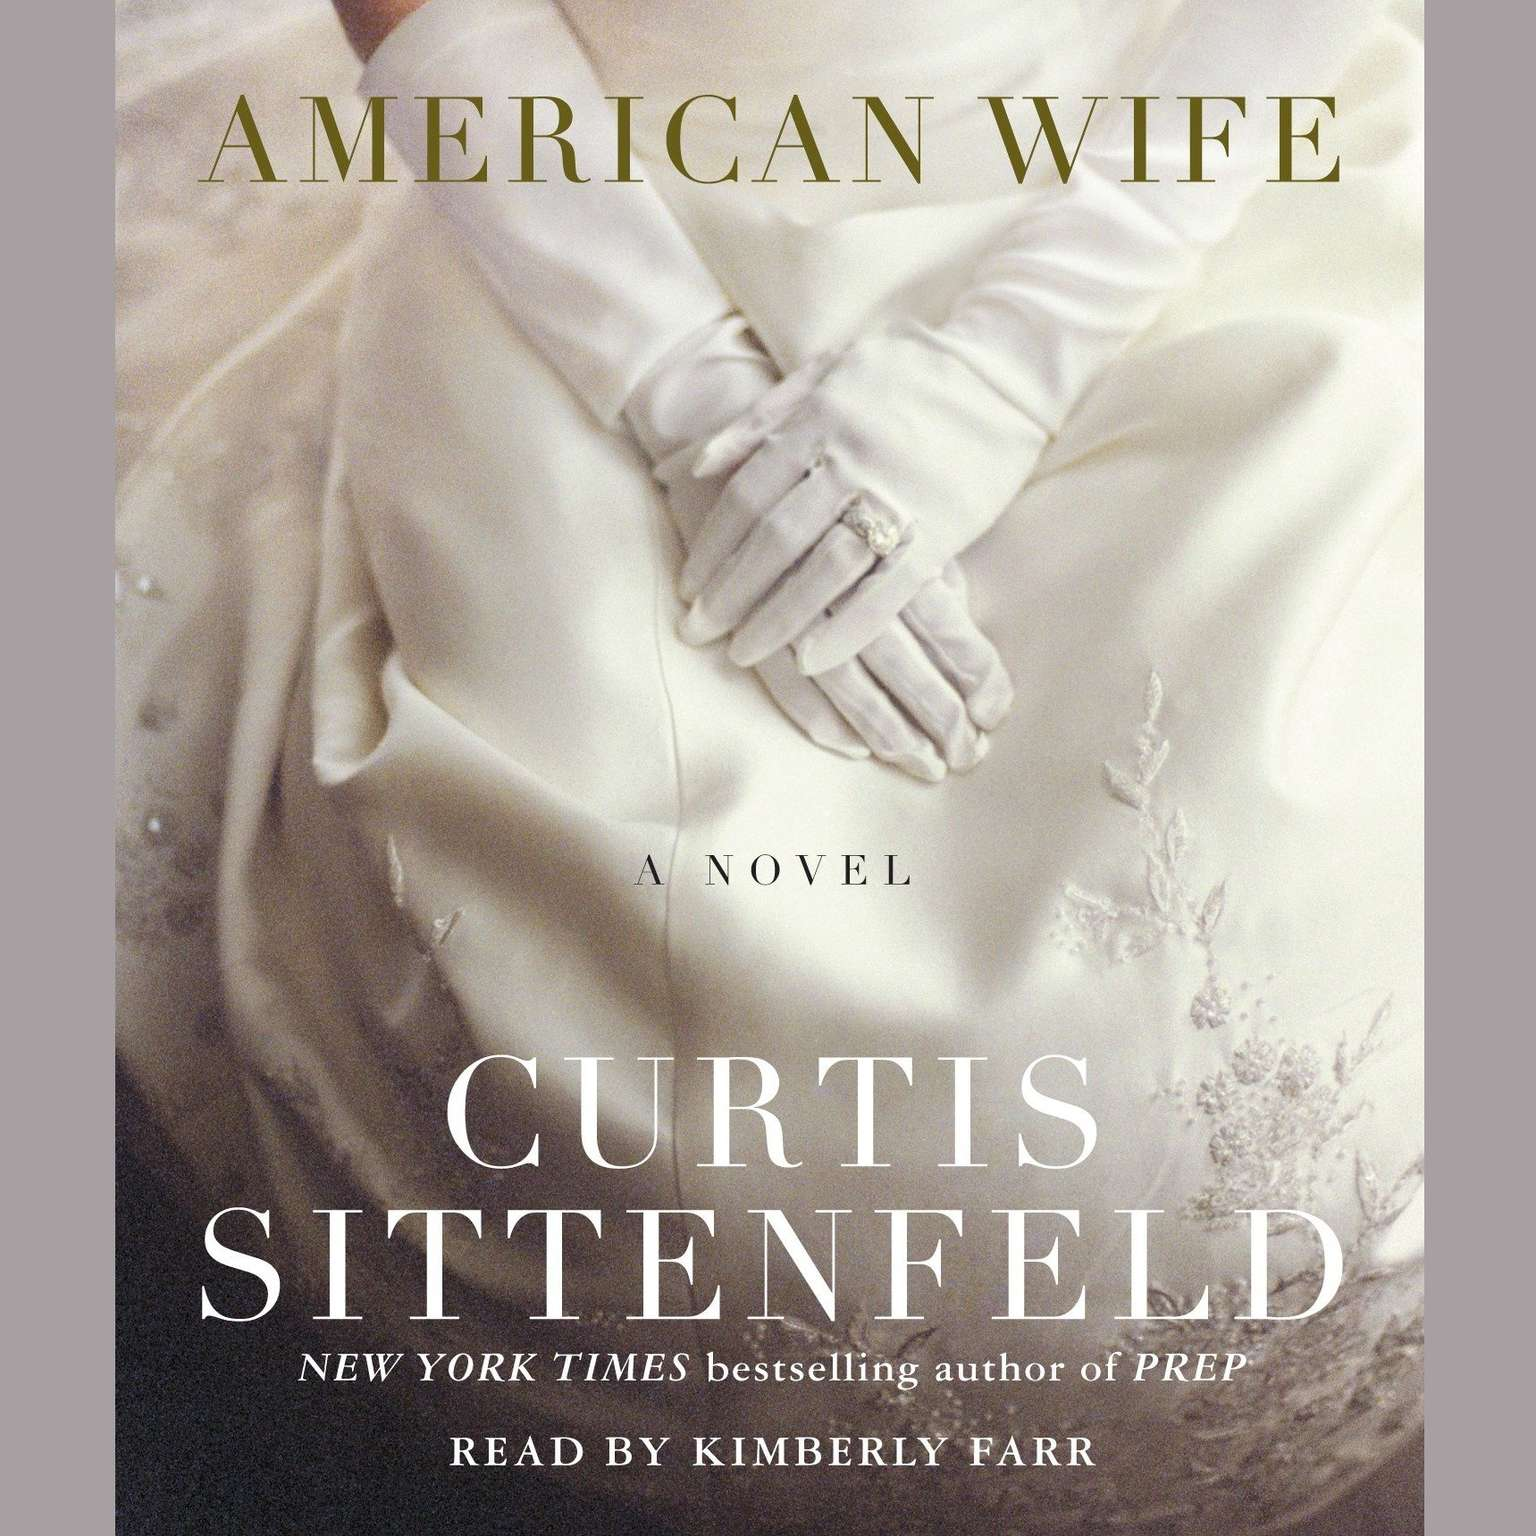 Printable American Wife: A Novel Audiobook Cover Art